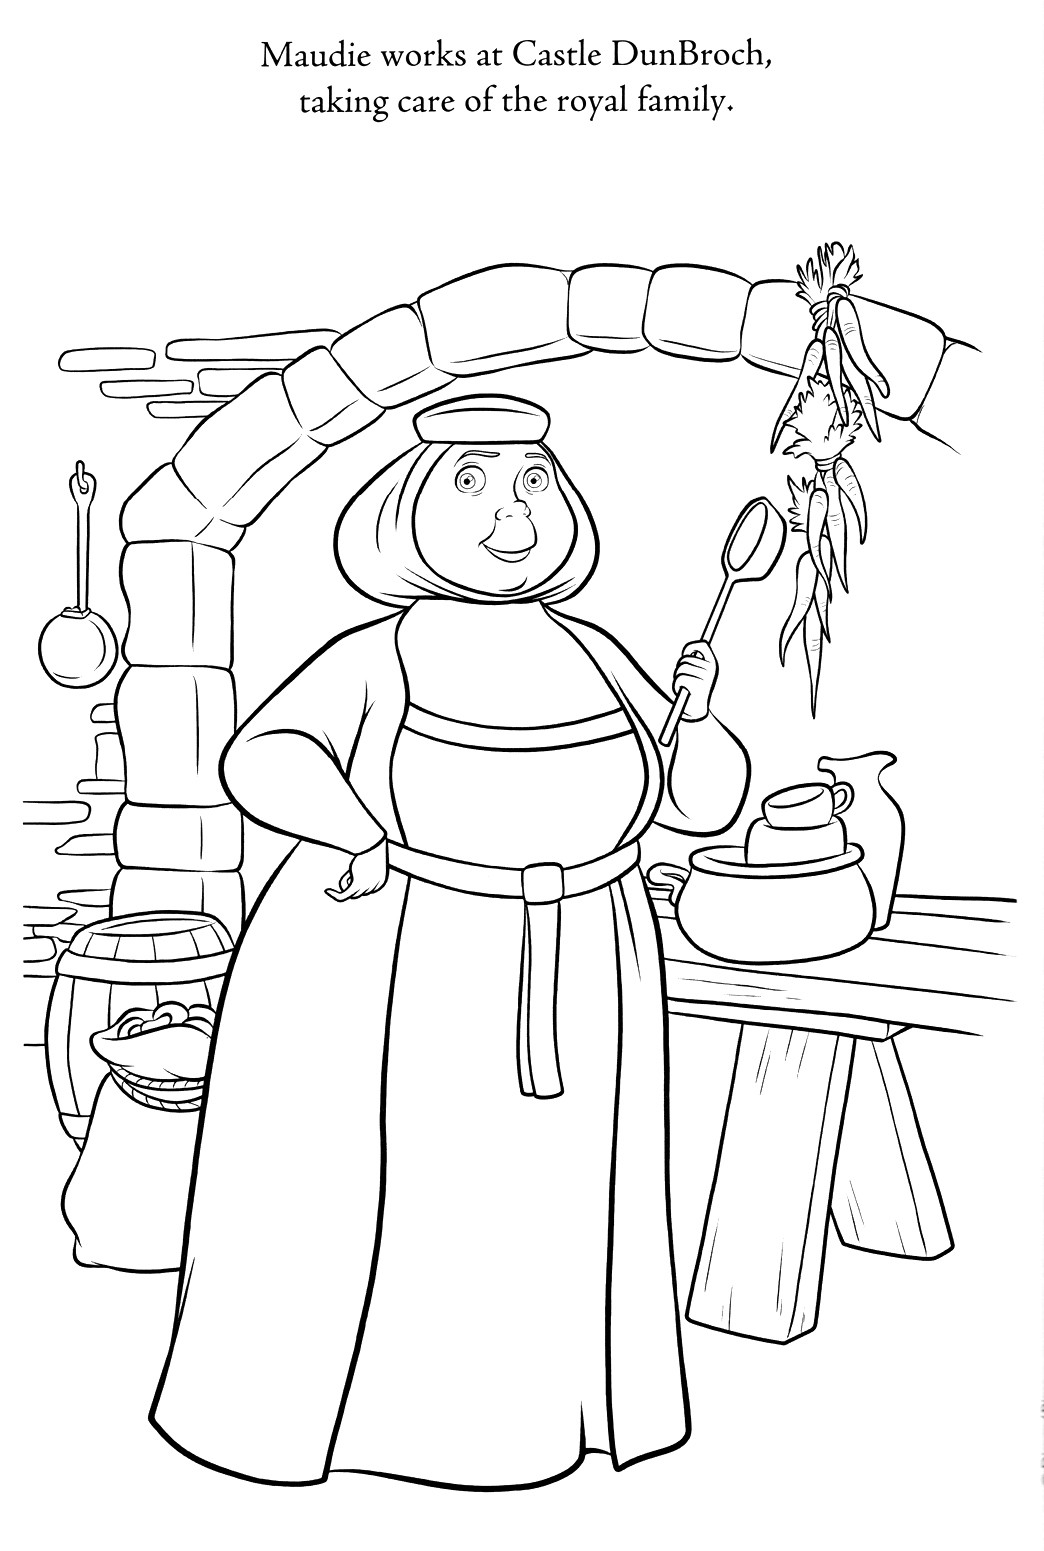 Coloring Pages For Kids Printables  Brave Coloring Pages Best Coloring Pages For Kids